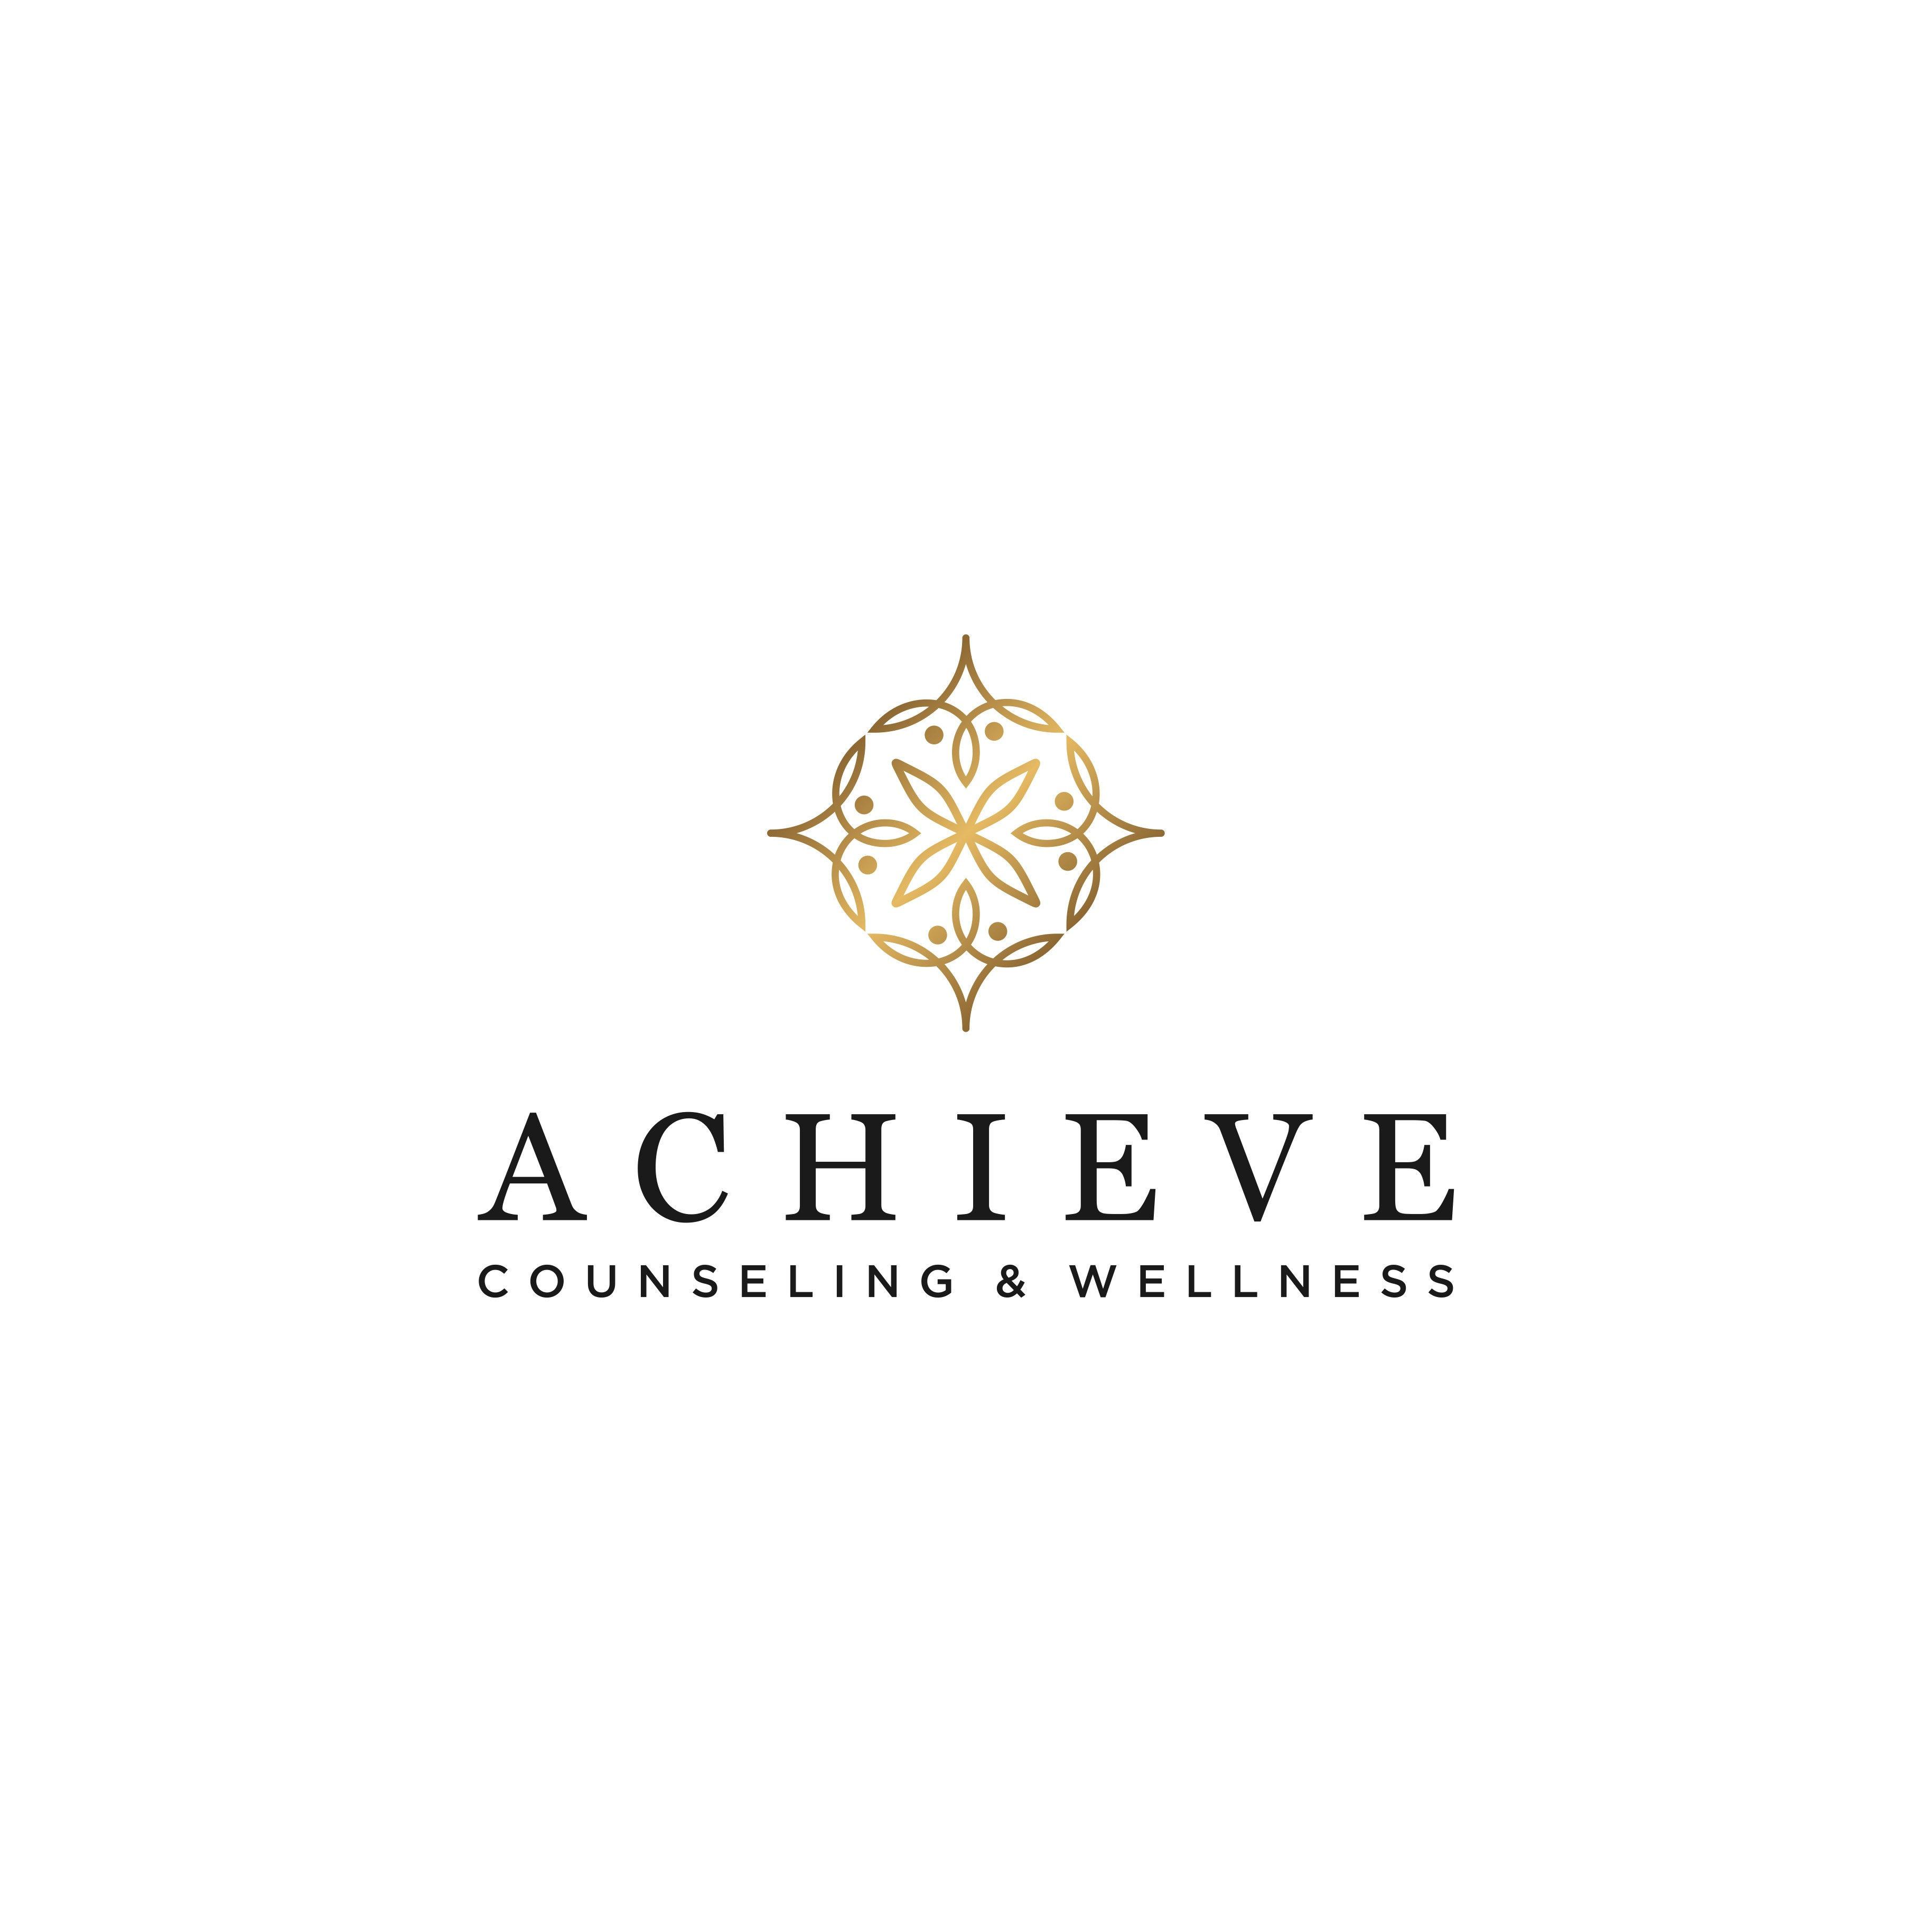 Create a contemporary, stylish and timeless logo for Achieve Counseling & Wellness